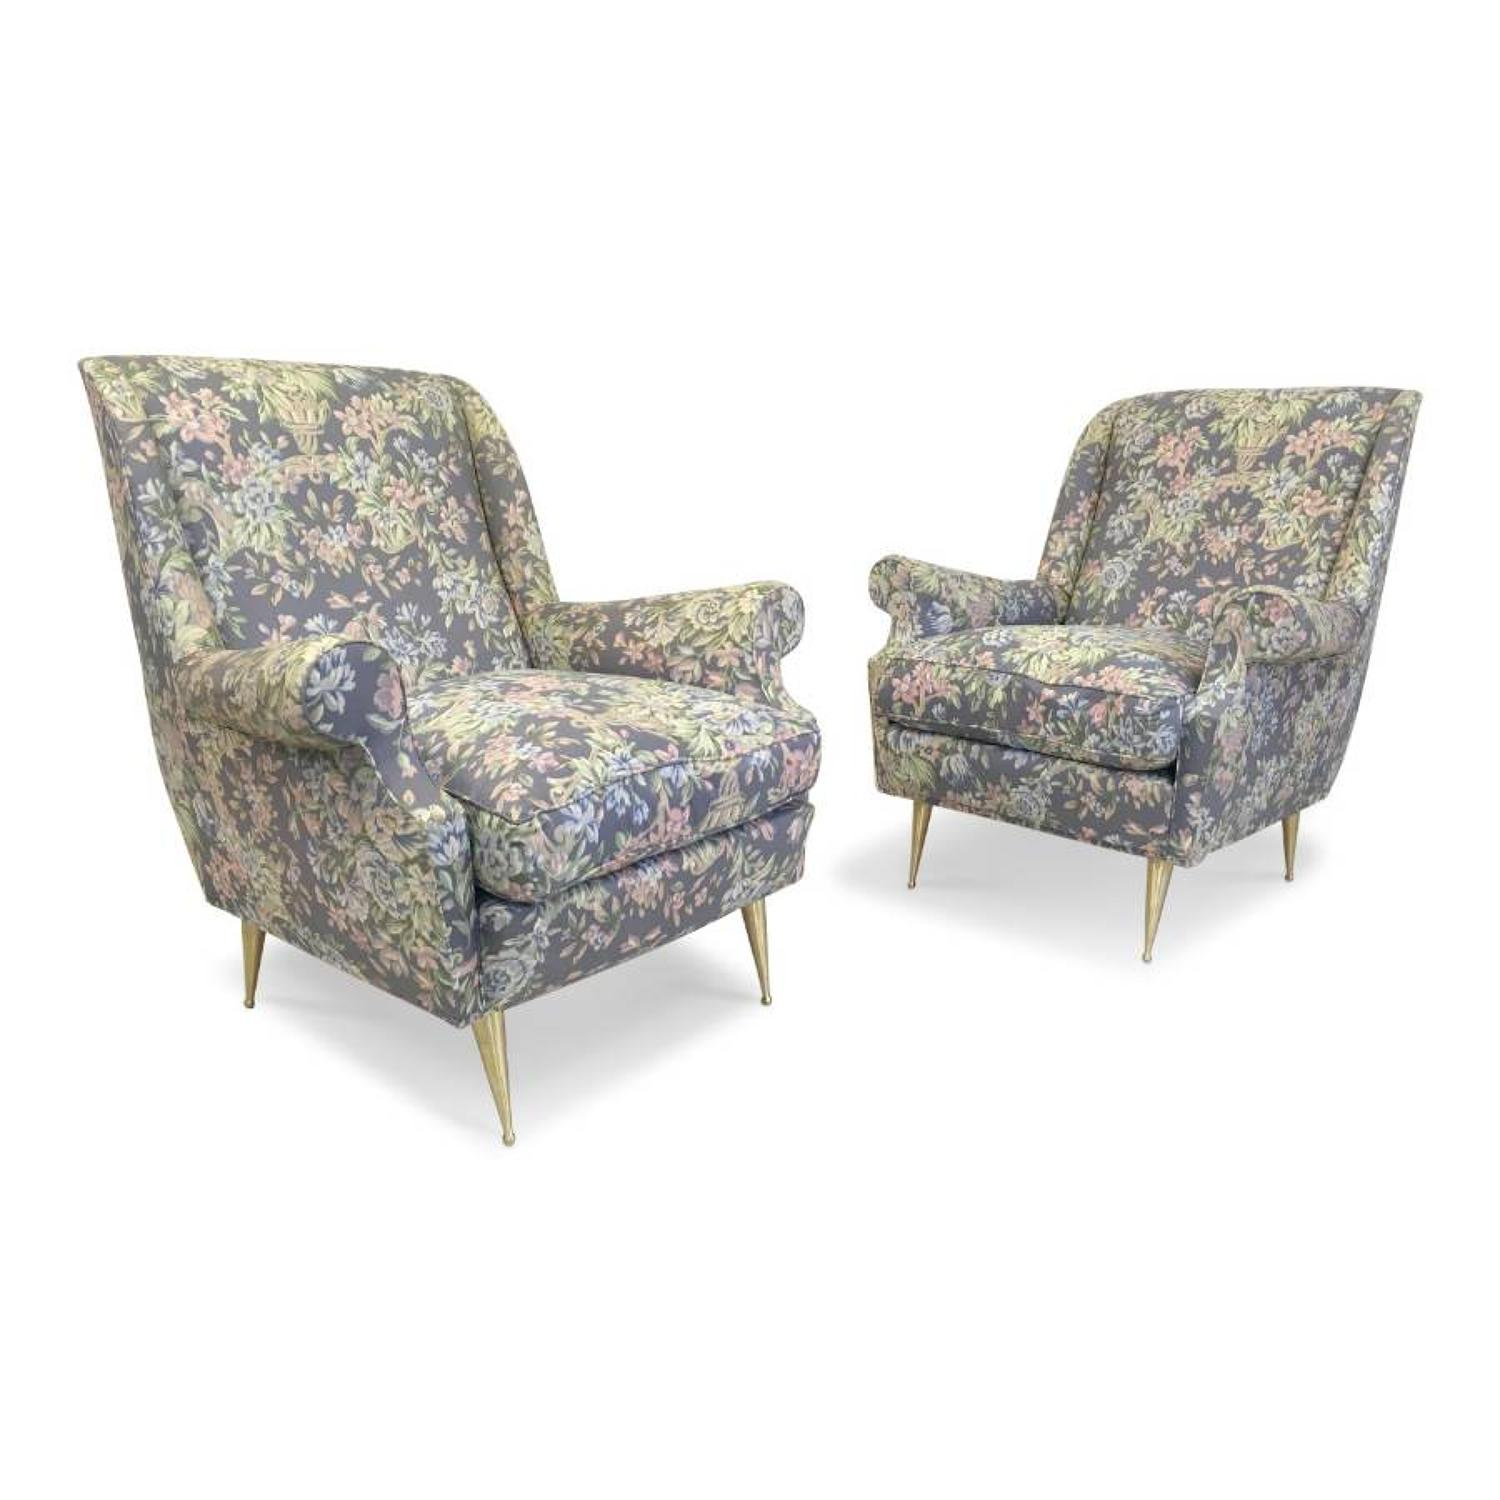 A pair of 1960s Italian armchairs on brass legs